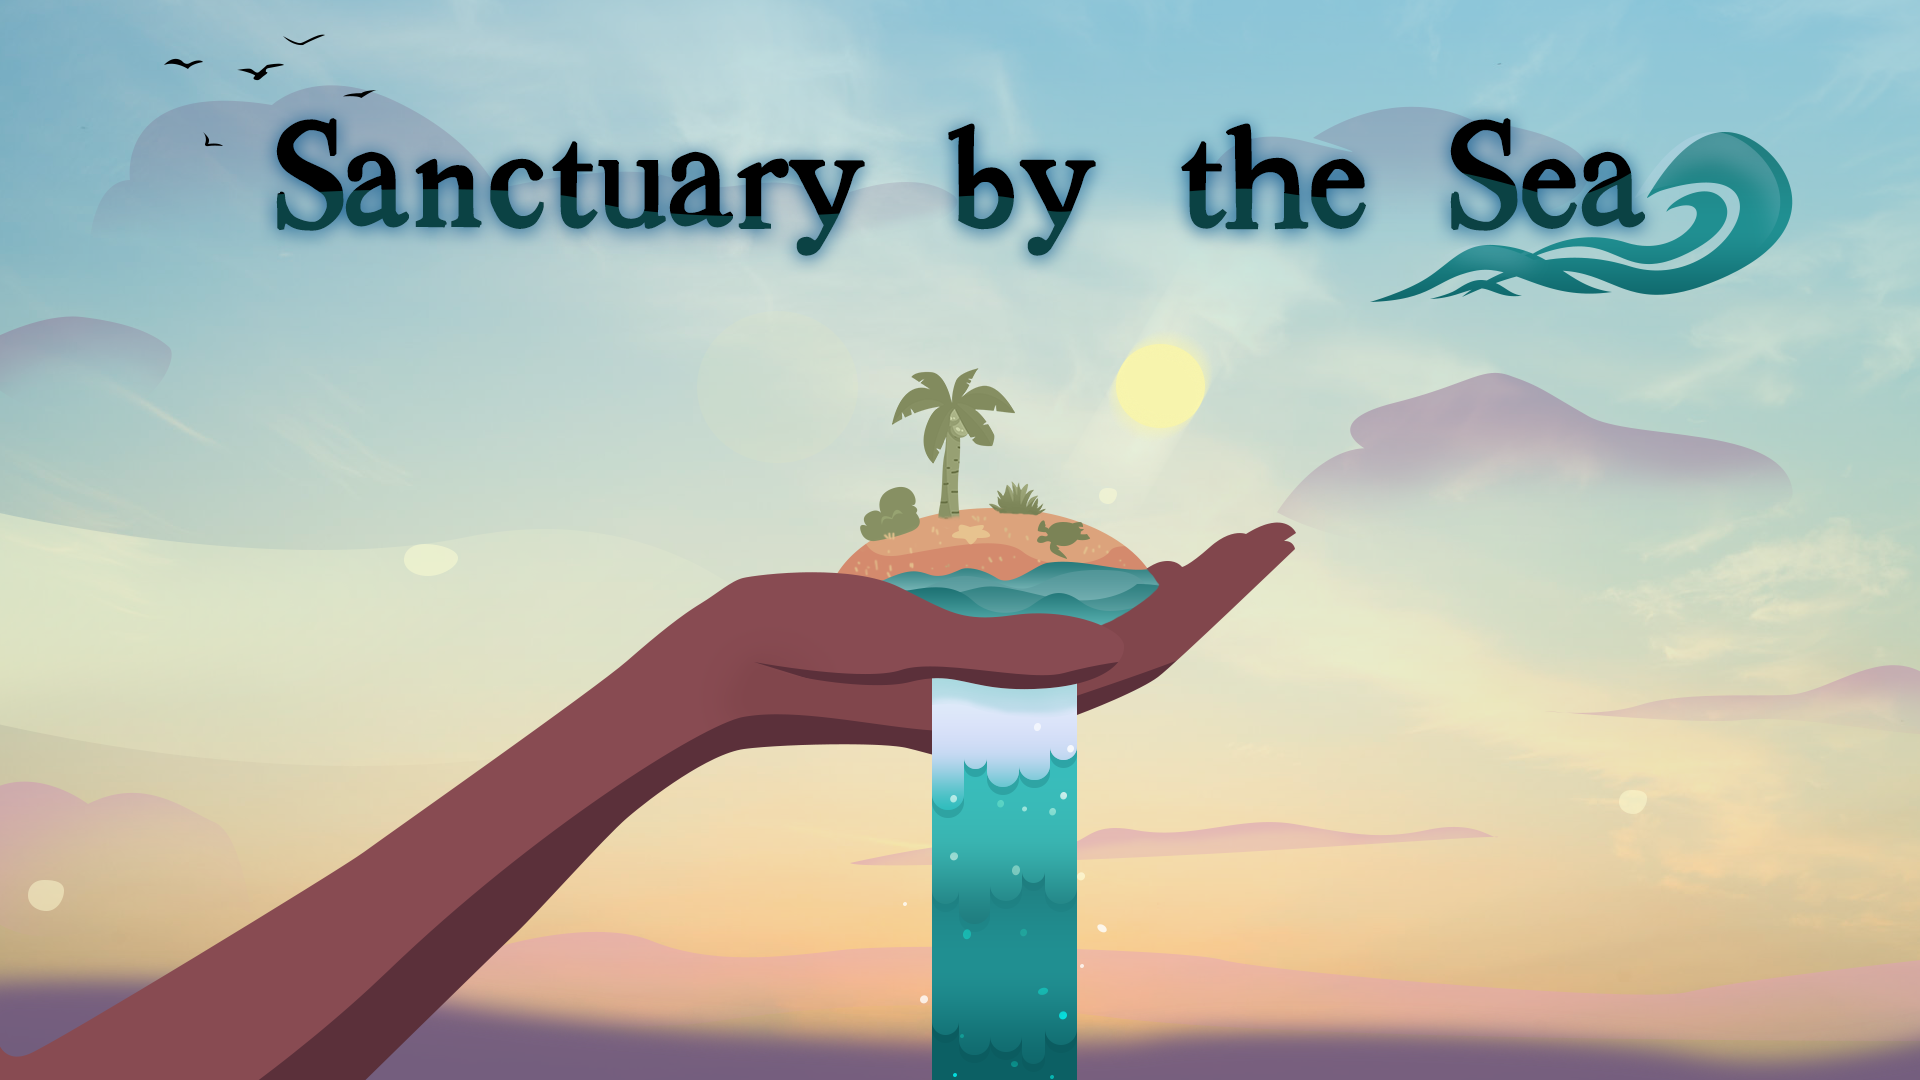 Sanctuary by the Sea